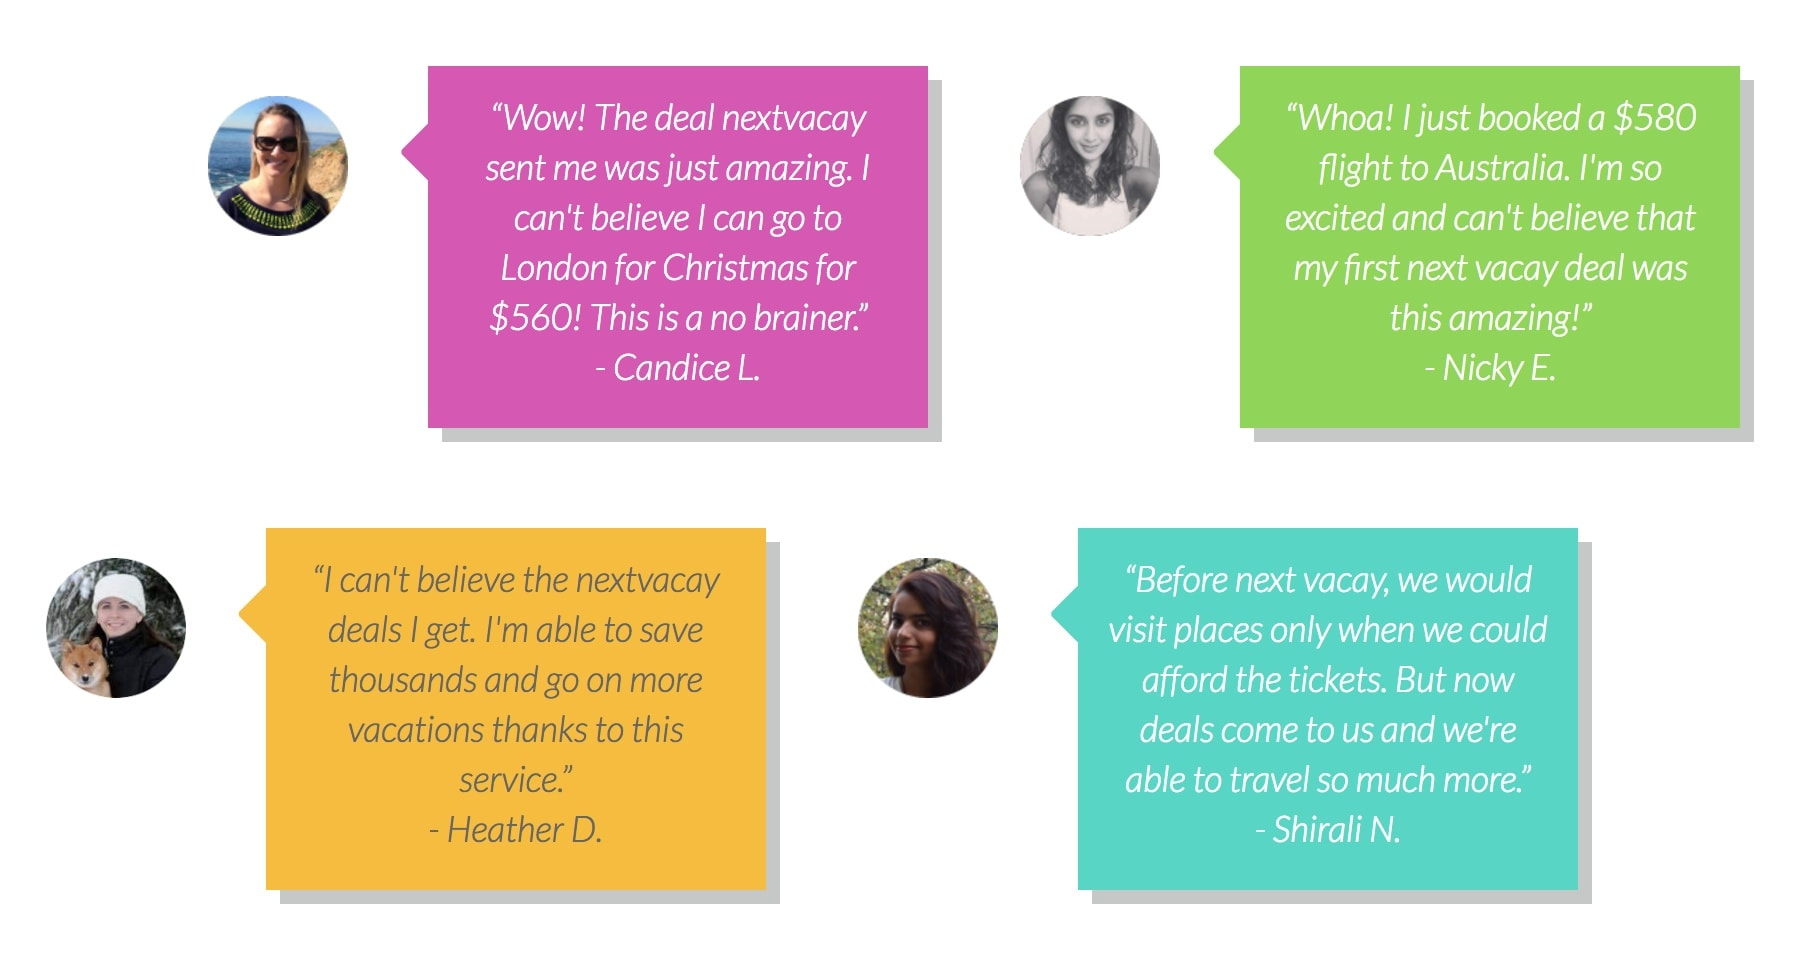 Next Vacay users are thrilled with their travel hacking results